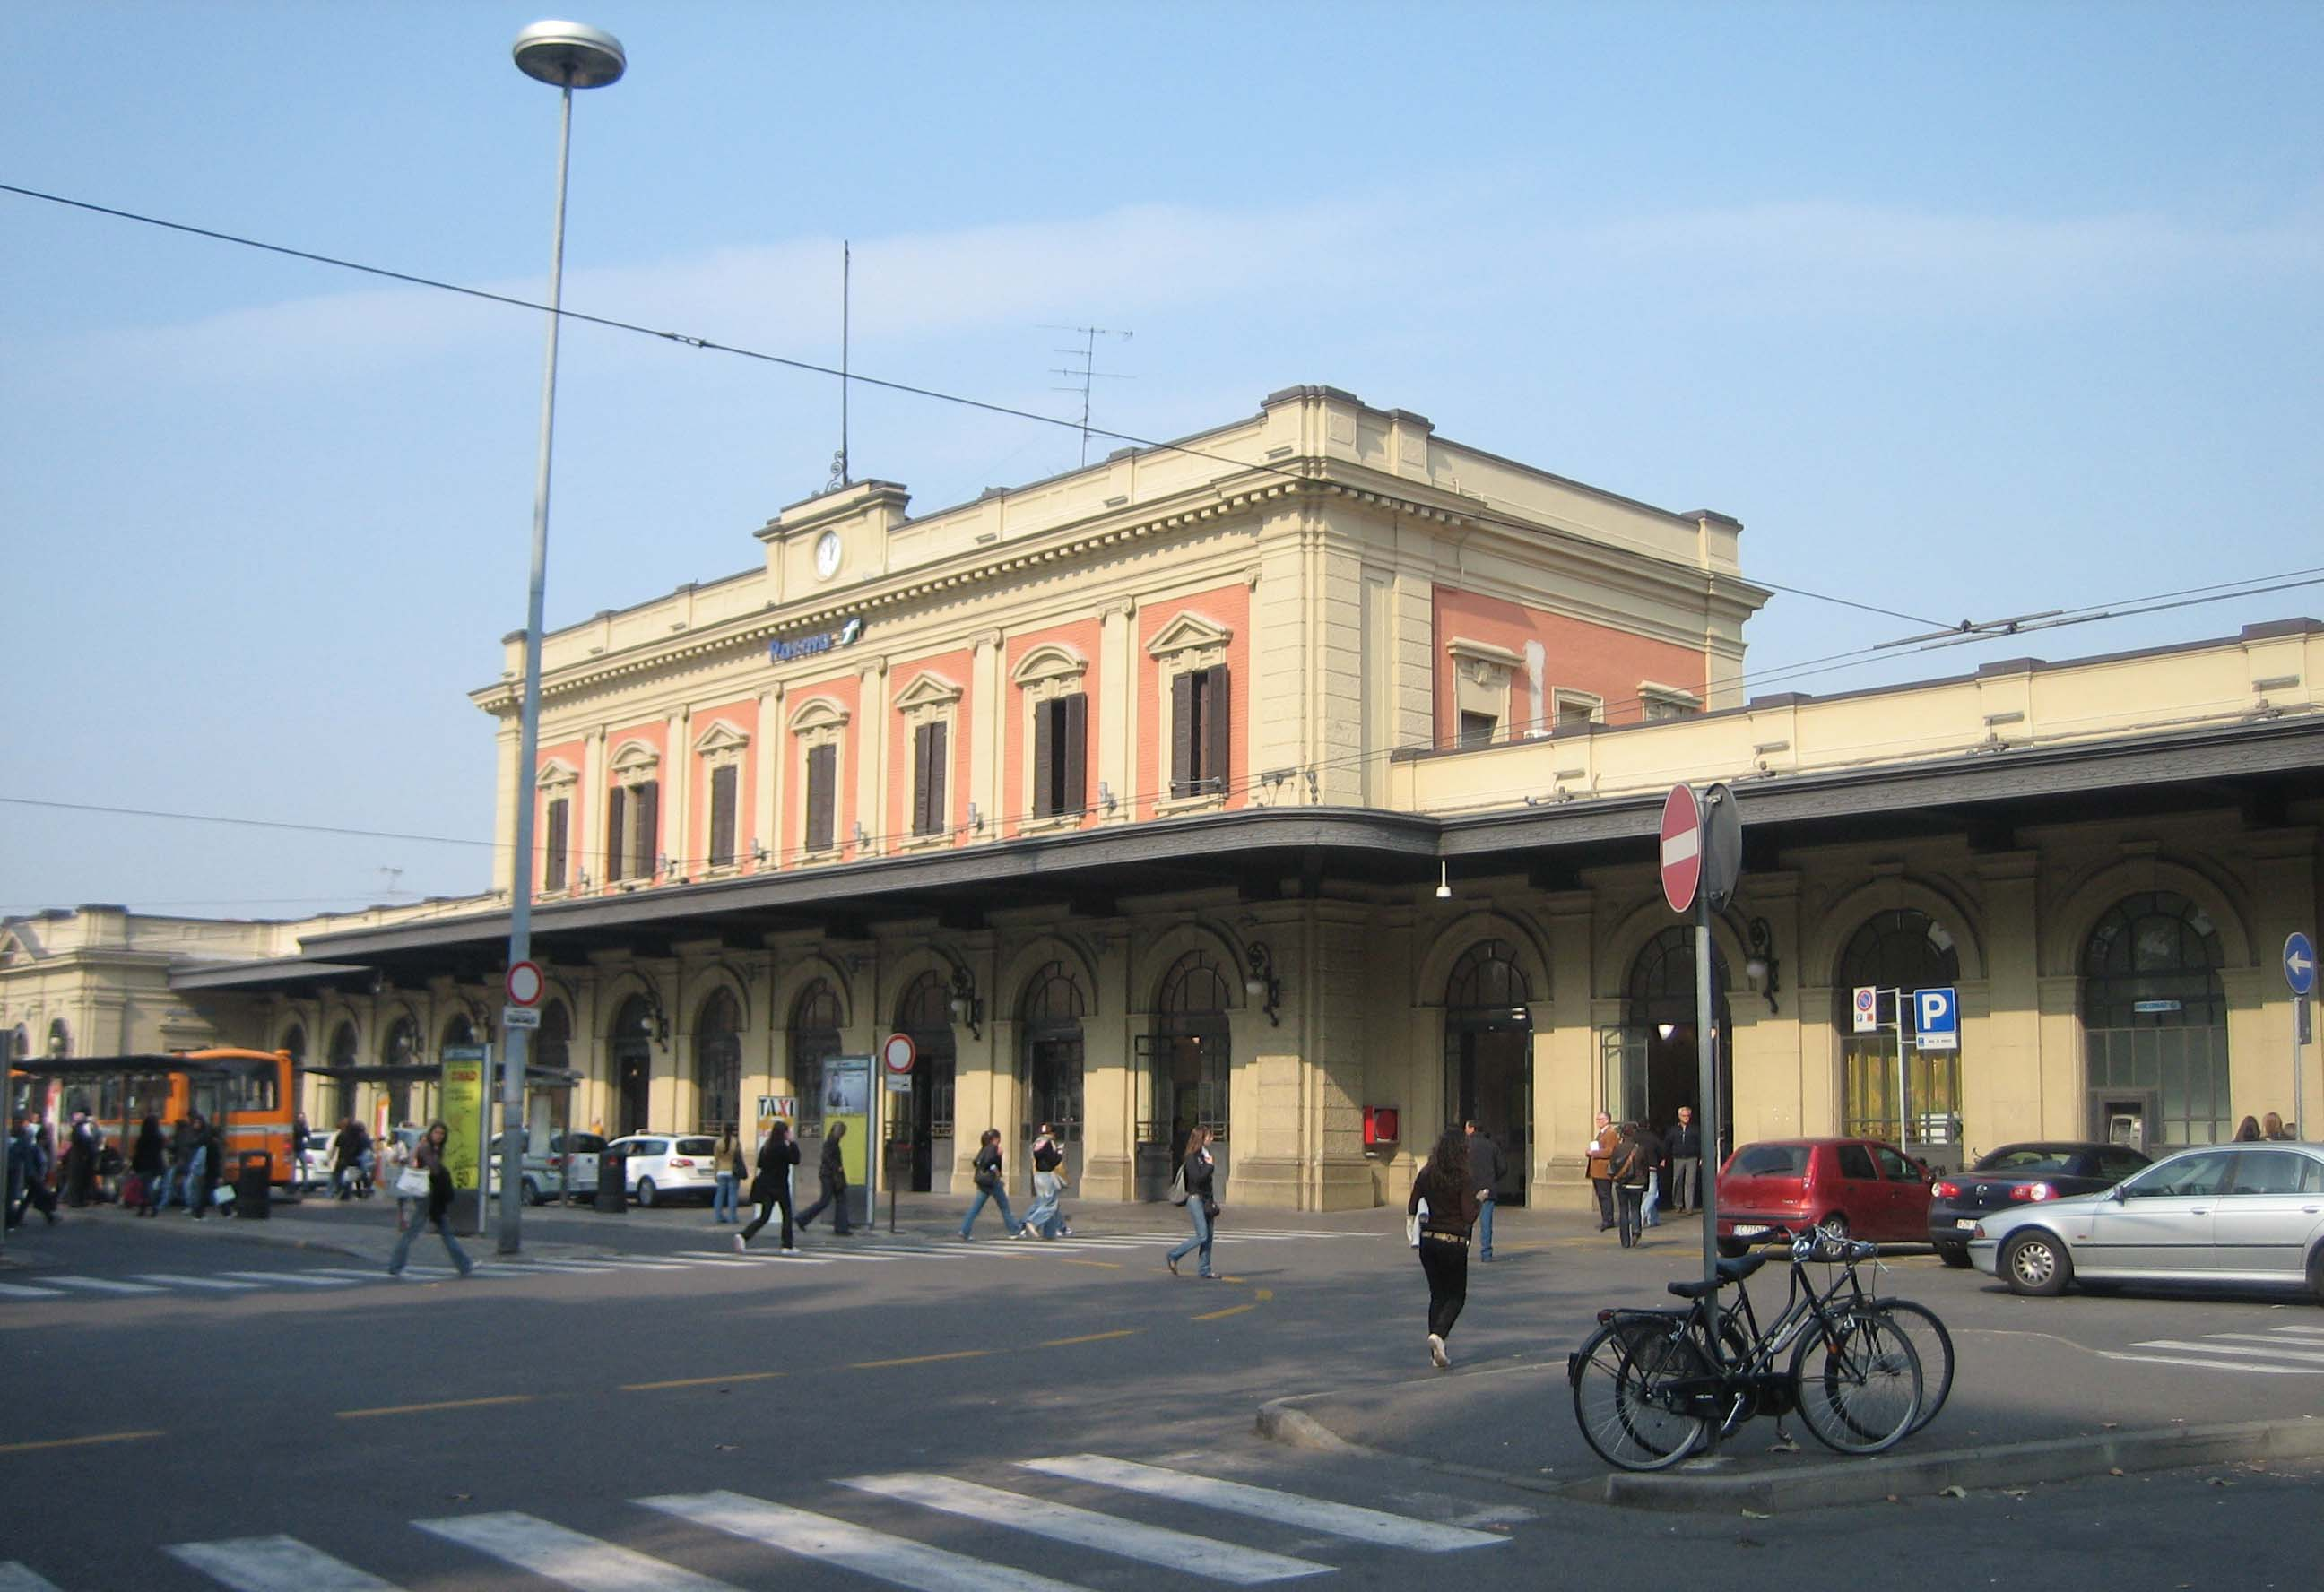 bologna meine stadt text free - photo#36